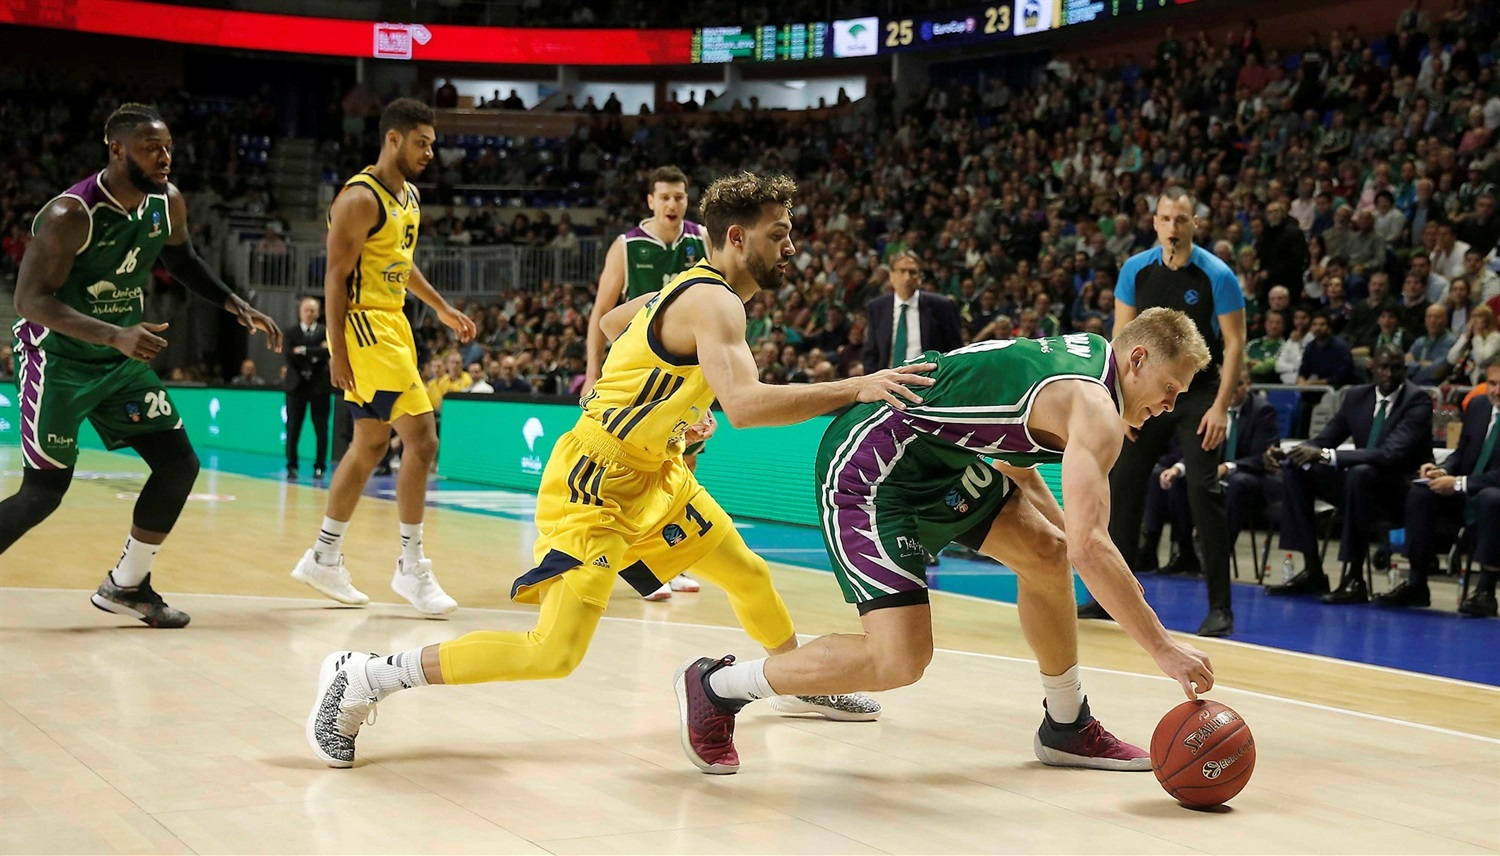 Sasu Salin - Unicaja Malaga (photo Mariano Pozo - Unicaja) - EC18